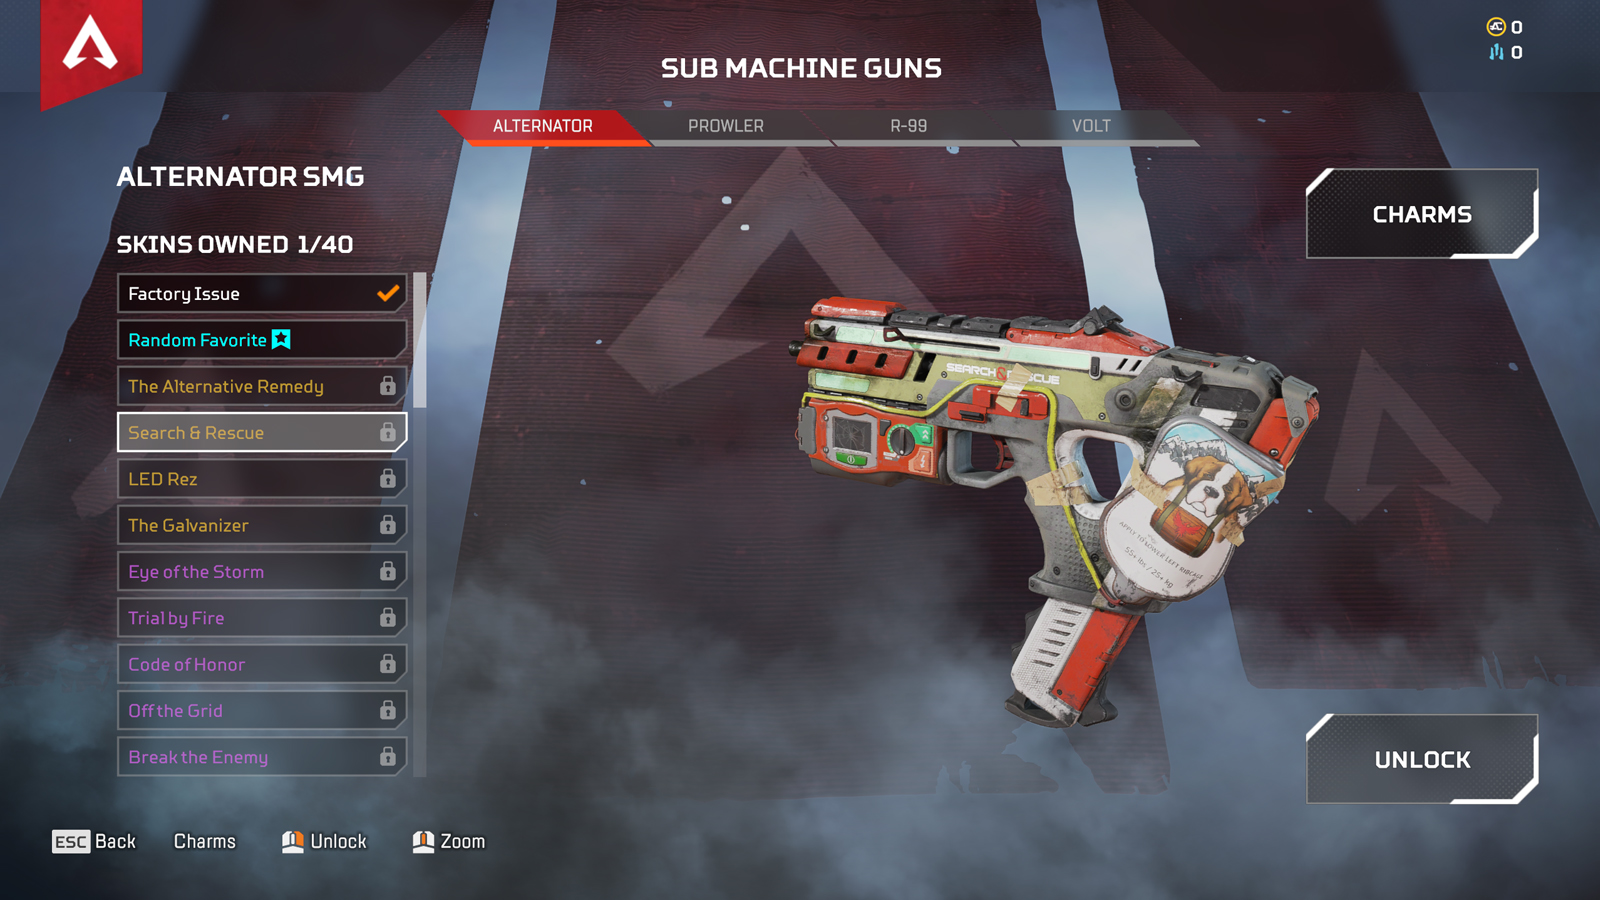 Alternator in the Apex legends loadout